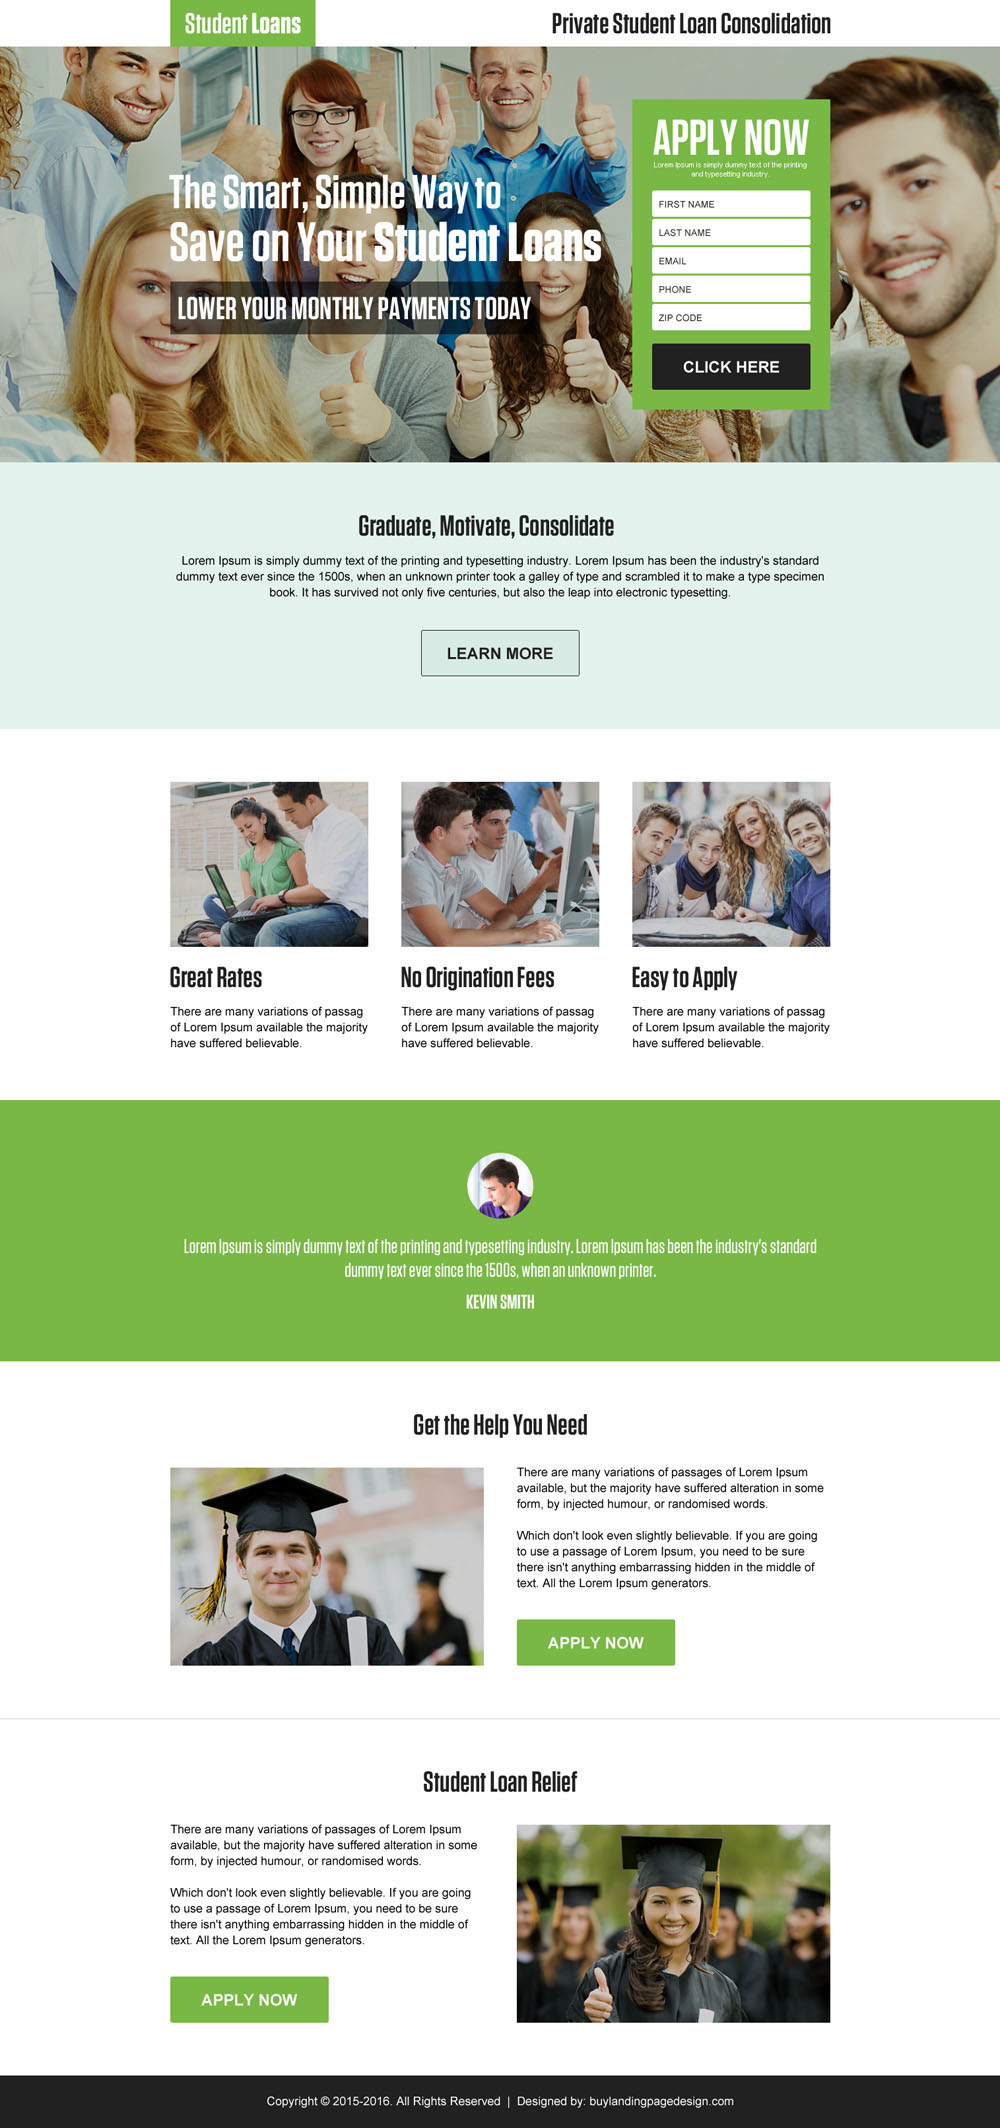 student-loan-consolidation-lead-capture-landing-page-design-019